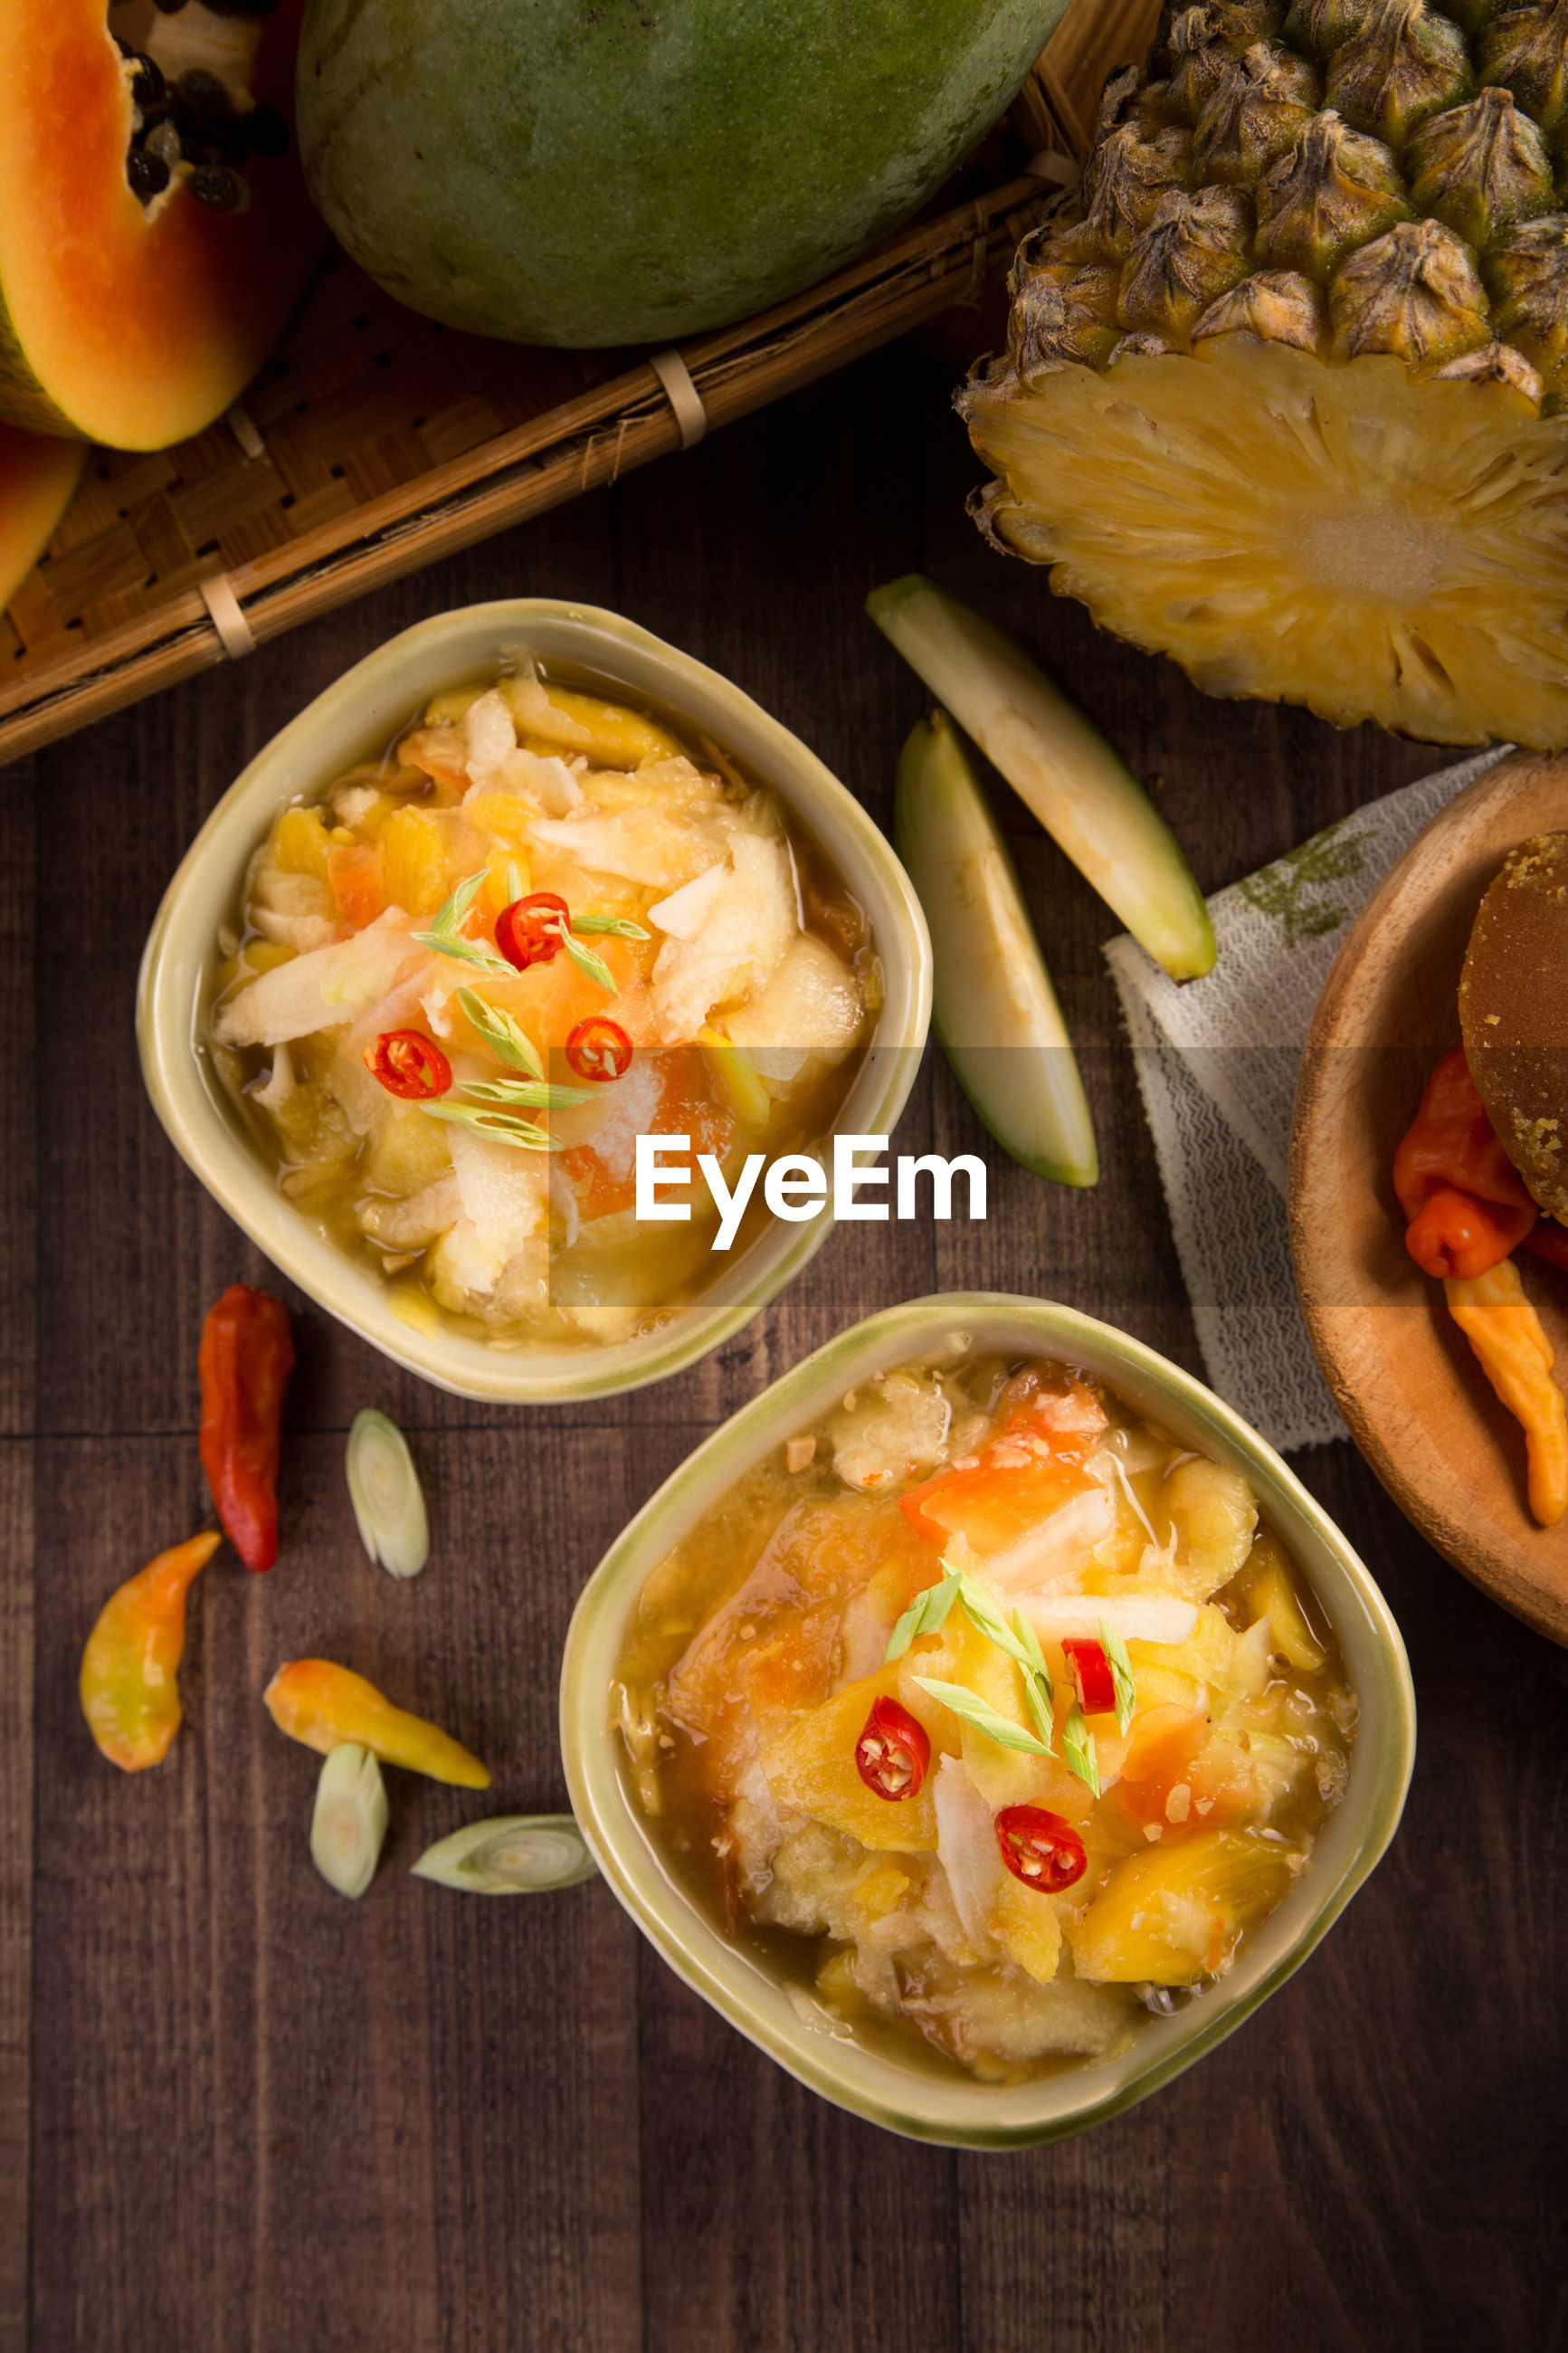 Directly above shot of food in bowls on wooden table